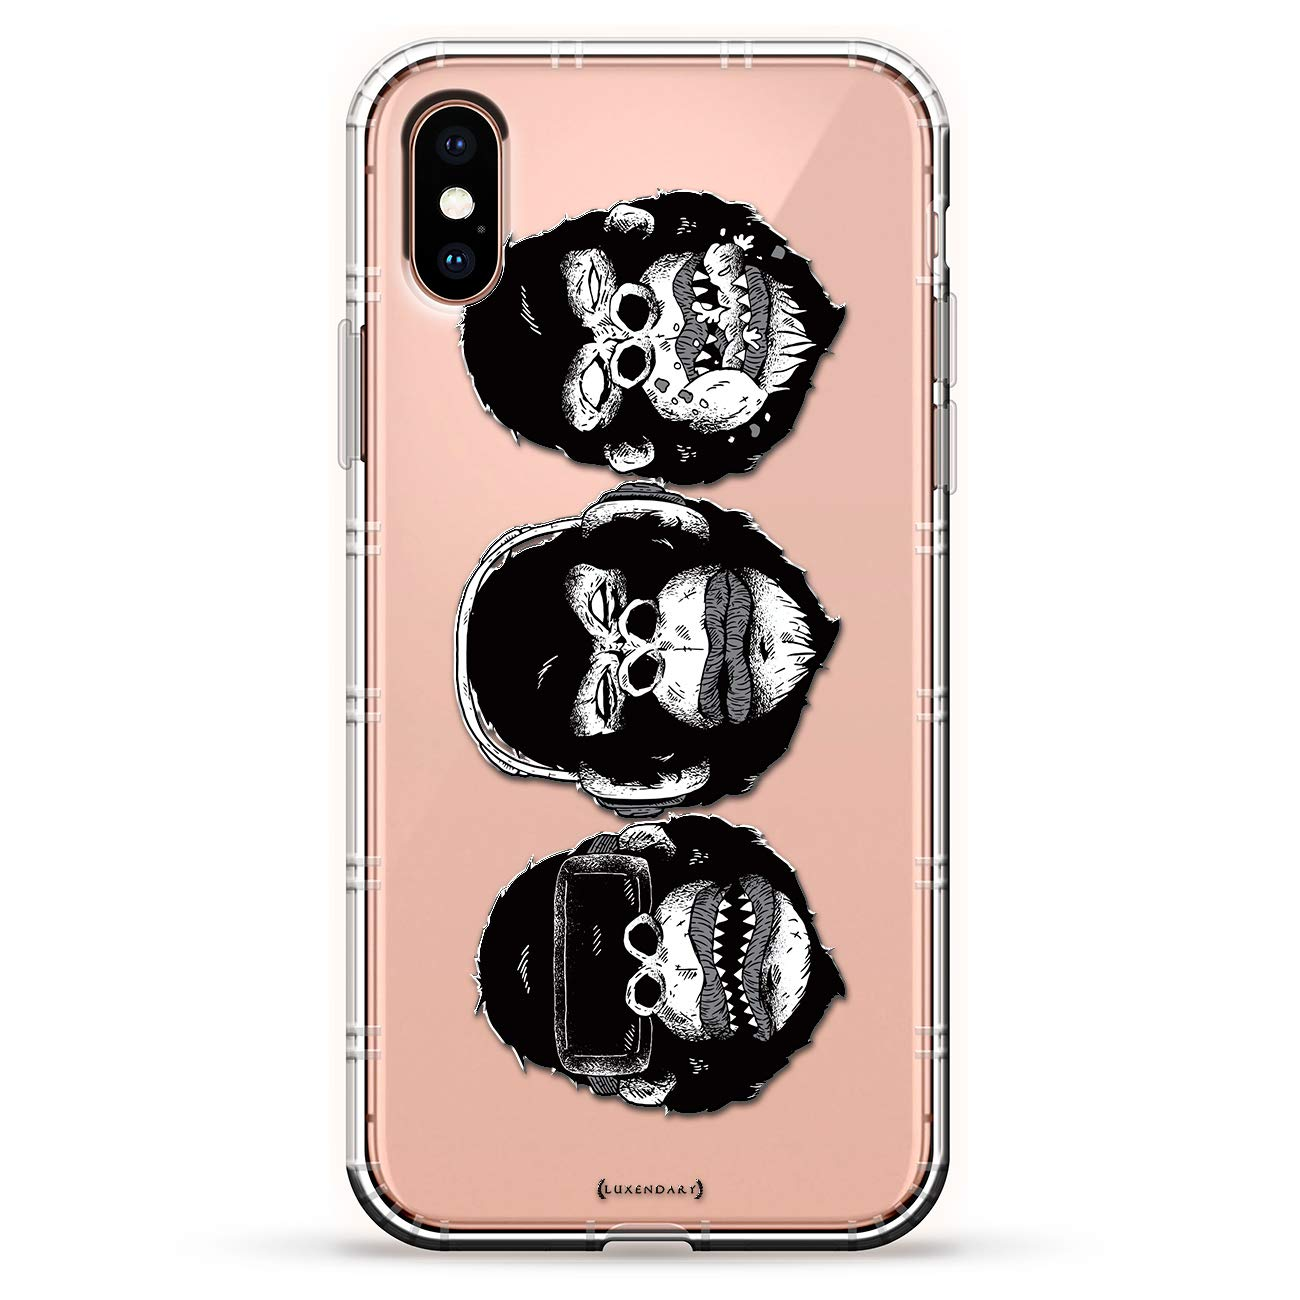 Animals: See No Evil, Hear No Evil, Speak No Evil Monkeys | Luxendary Air Series Clear case with 3D-Printed Design & Air Cushions for iPhone Xs/X